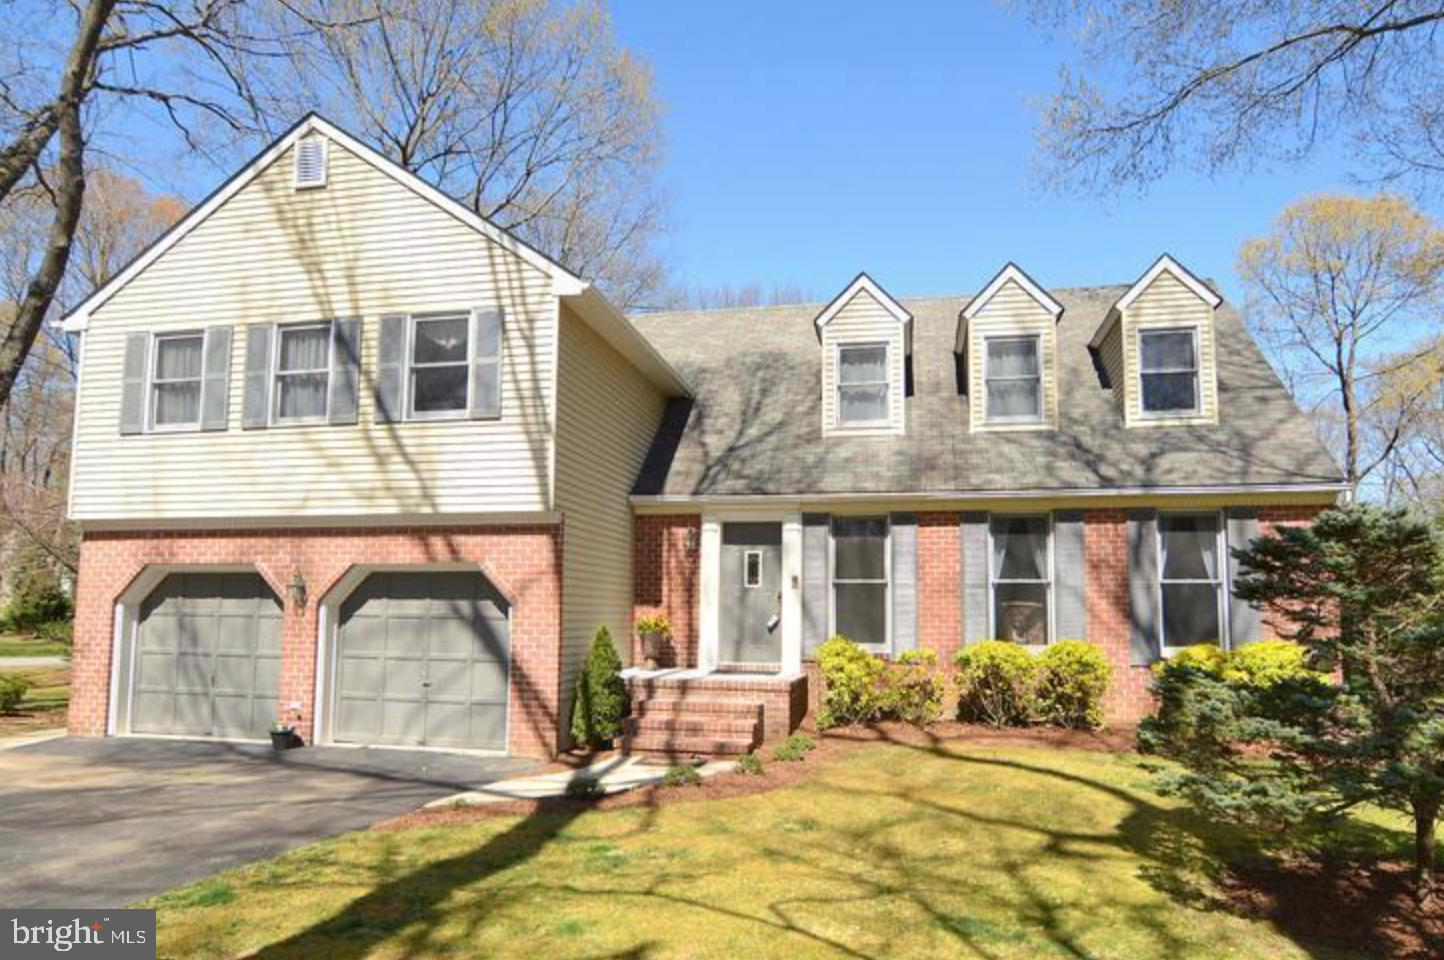 """Limited time opportunity to own this home in Severna Park at well below market value. If the property is not sold within about 45 days, Seller plans to renovate the property and then re-list the property at a price reflective of full market value in an upgraded condition.  All existing mechanical systems are in working order to the best of Seller's knowledge. A few cosmetic updates are really all that is needed for this inviting colonial home located in a quiet, established neighborhood. The property includes an in-ground pool, spa/hot-tub, fenced backyard, large terraced Trex decking, pavered patio around pool and mature landscaping. Large formal living room and separate dining room areas with hardwood flooring, remodeled kitchen with soft close drawers on maple cabinetry, stainless appliances, pantry, recessed lights & breakfast nook. Sunken family room with wood-burning fireplace. Spacious master suite with garden bath. Finished basement with lower-level bonus room that could be used as an additional (5th) bedroom. Large, flat corner lot with mature shad trees.  Sale and compensation is subject to court approval of an assignment contract. Property is sold in """"As Is"""" condition with inspections for informational purposes only. Required earnest money deposit is $38,000."""